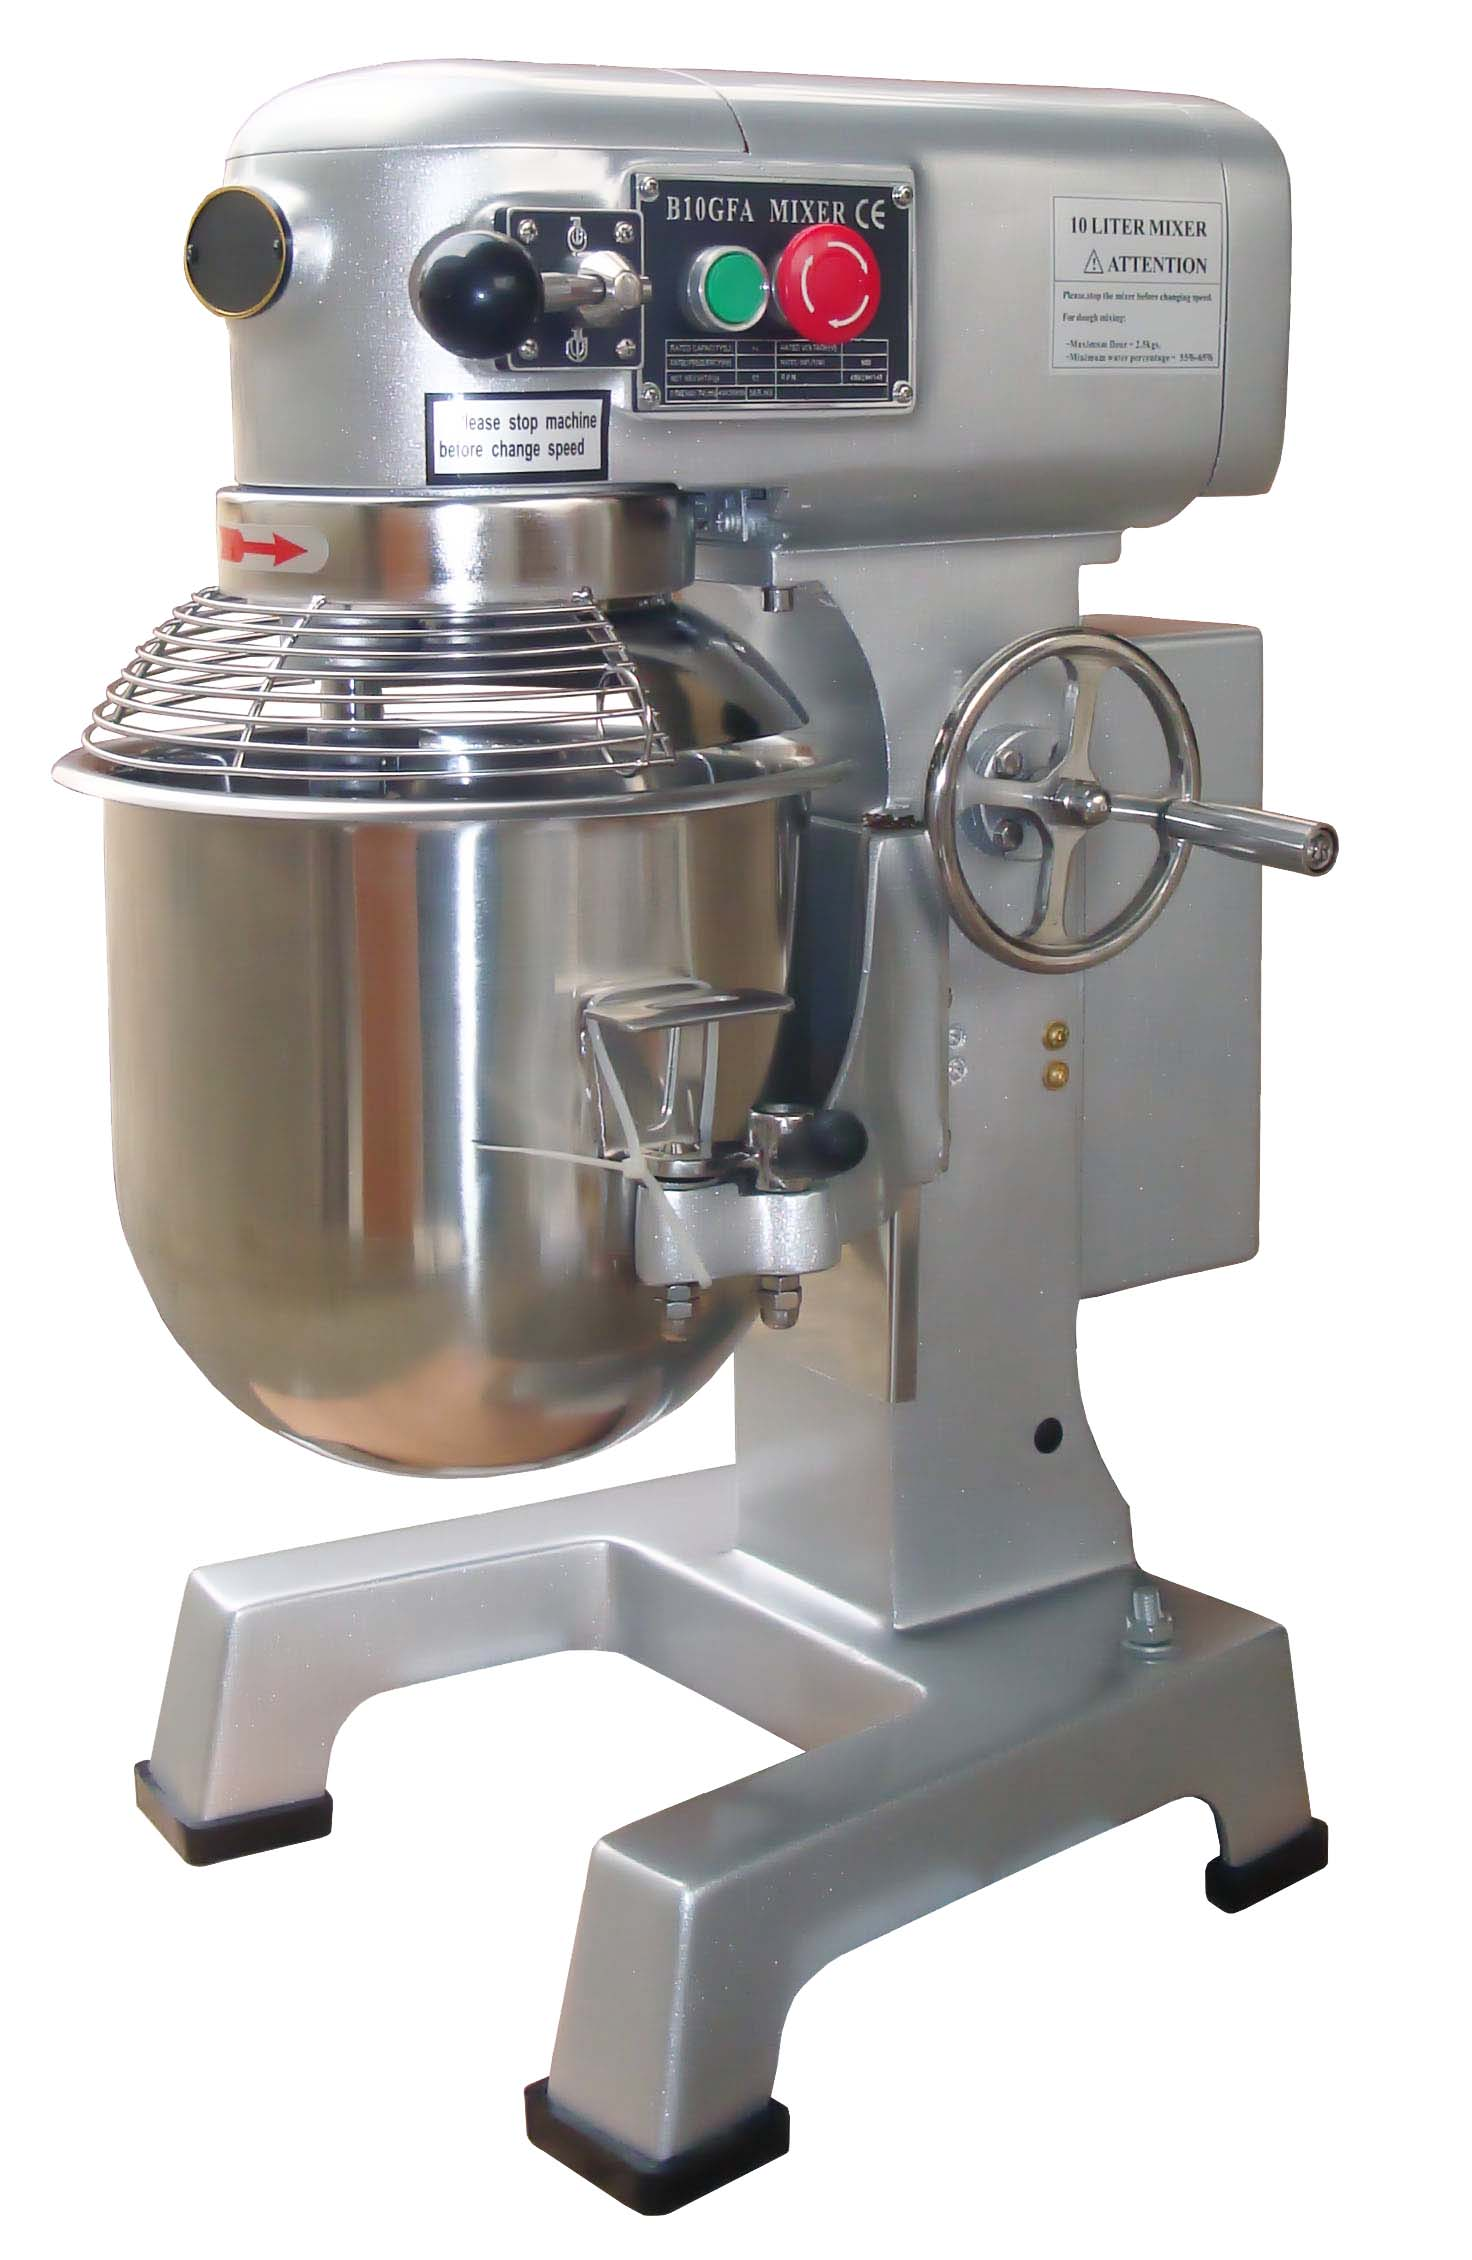 pmk5010--ankor-planetary-mixer--10lt-no-hubwith-safety-guard